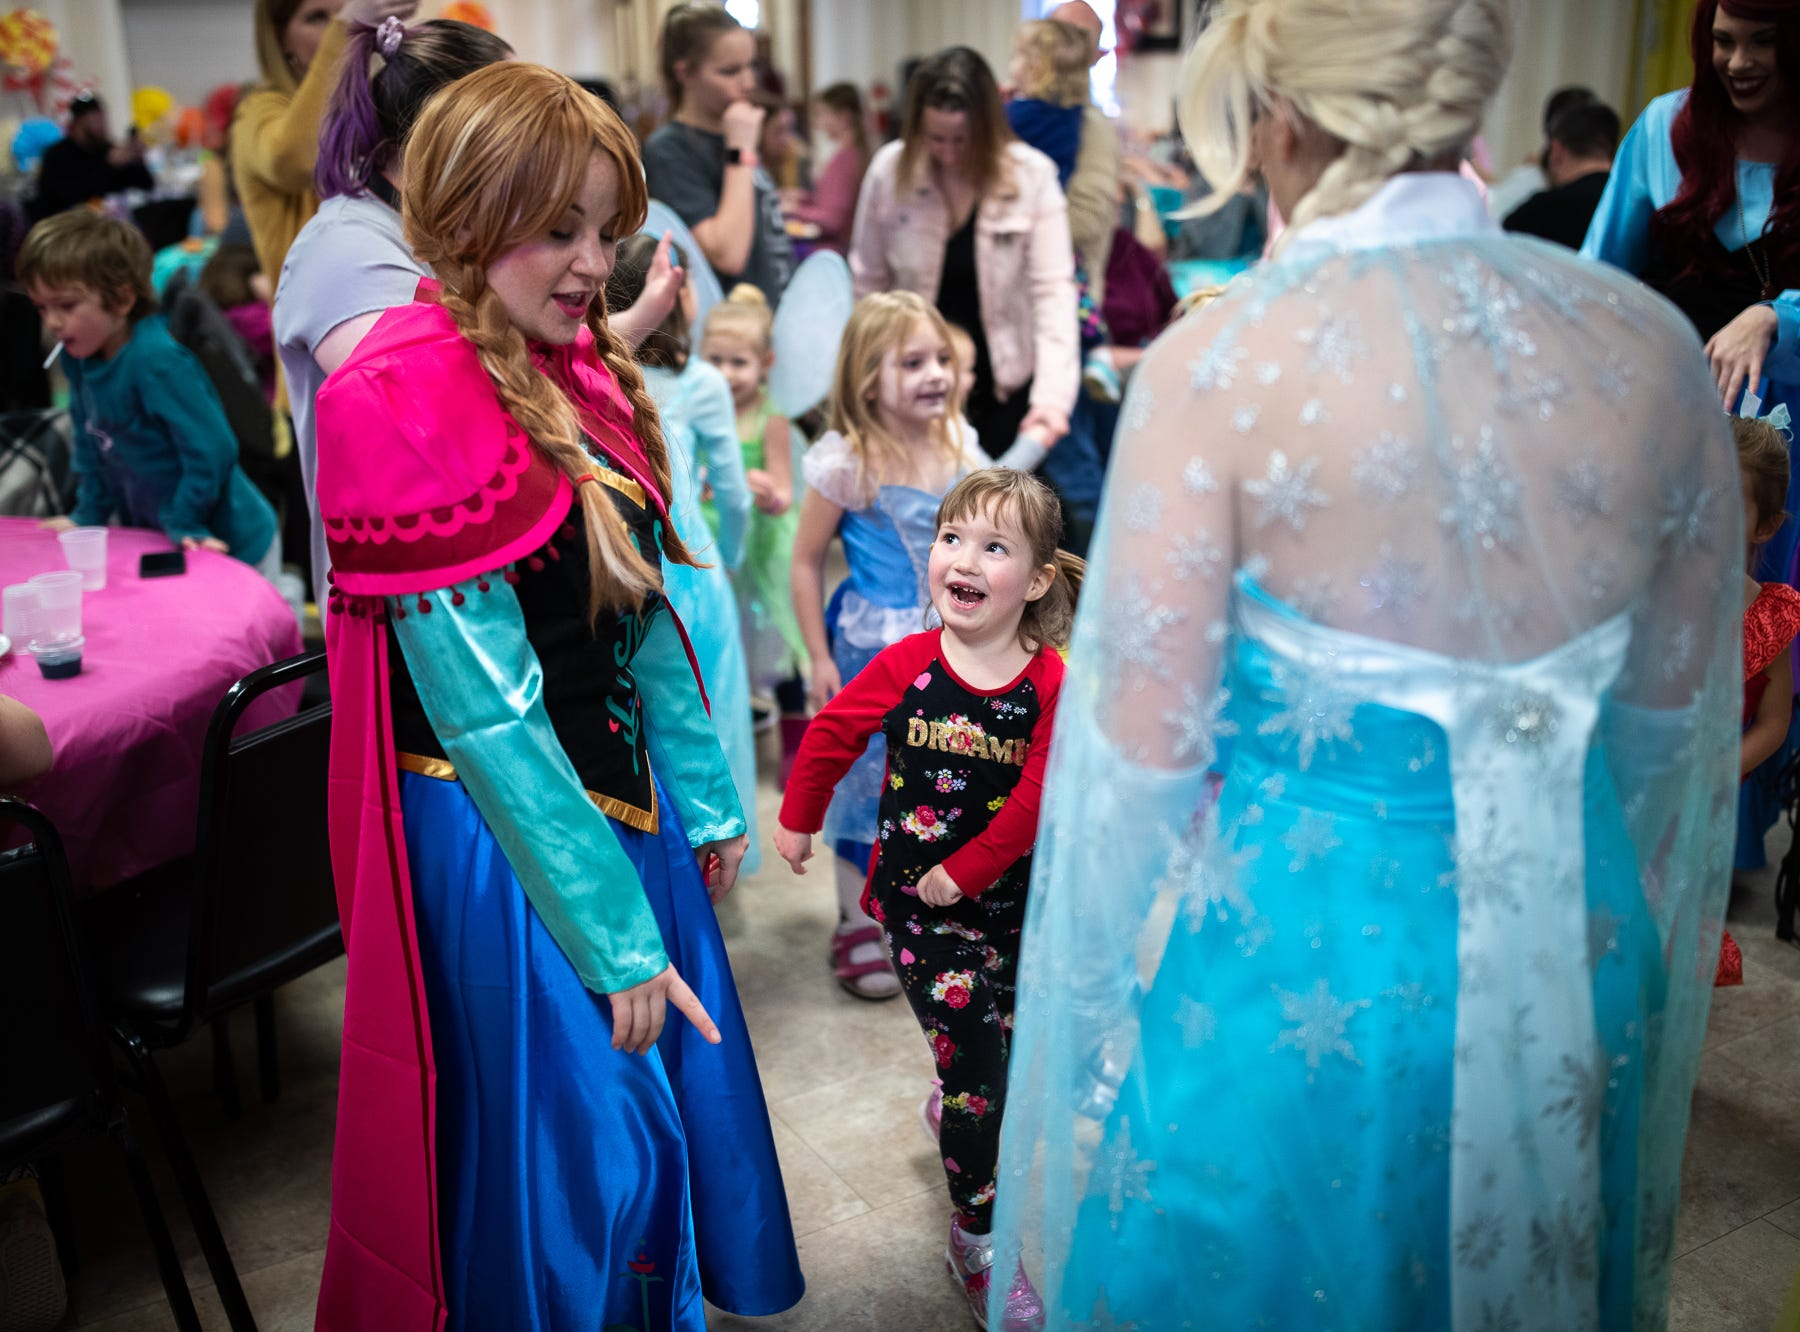 Princesses dance with kids during a princess teatime hosted by the Black Rose Rollers, Saturday, Feb. 9, 2019, at the Hanover YWCA.